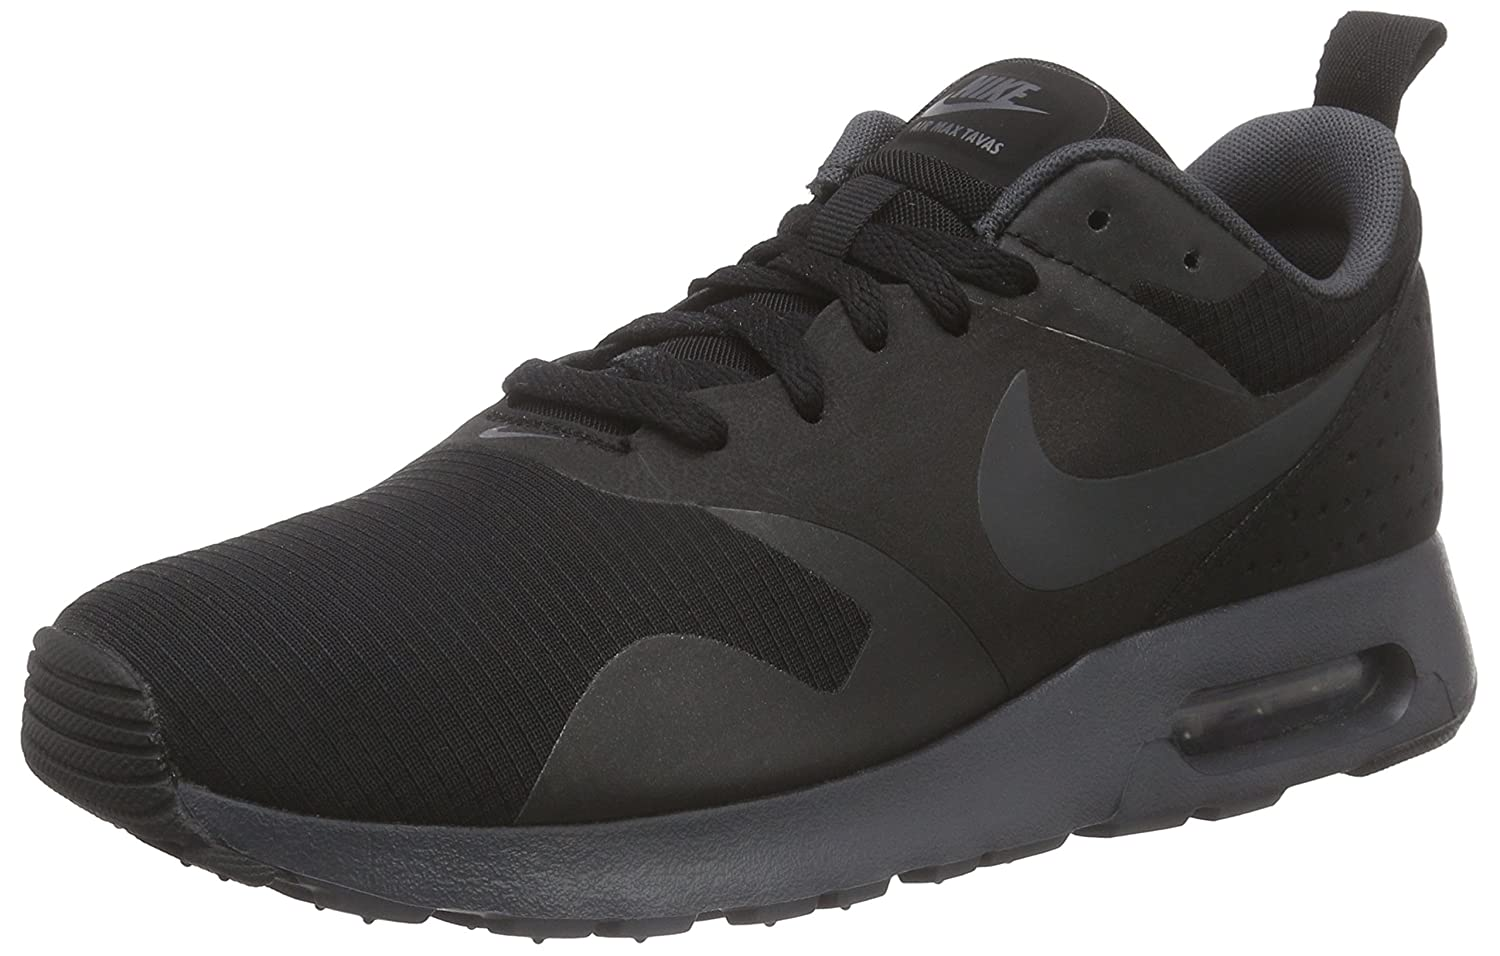 c7b7681a7a5b01 Nike Men s Air Max Tavas Multisport Outdoor Shoes  Amazon.co.uk  Shoes    Bags